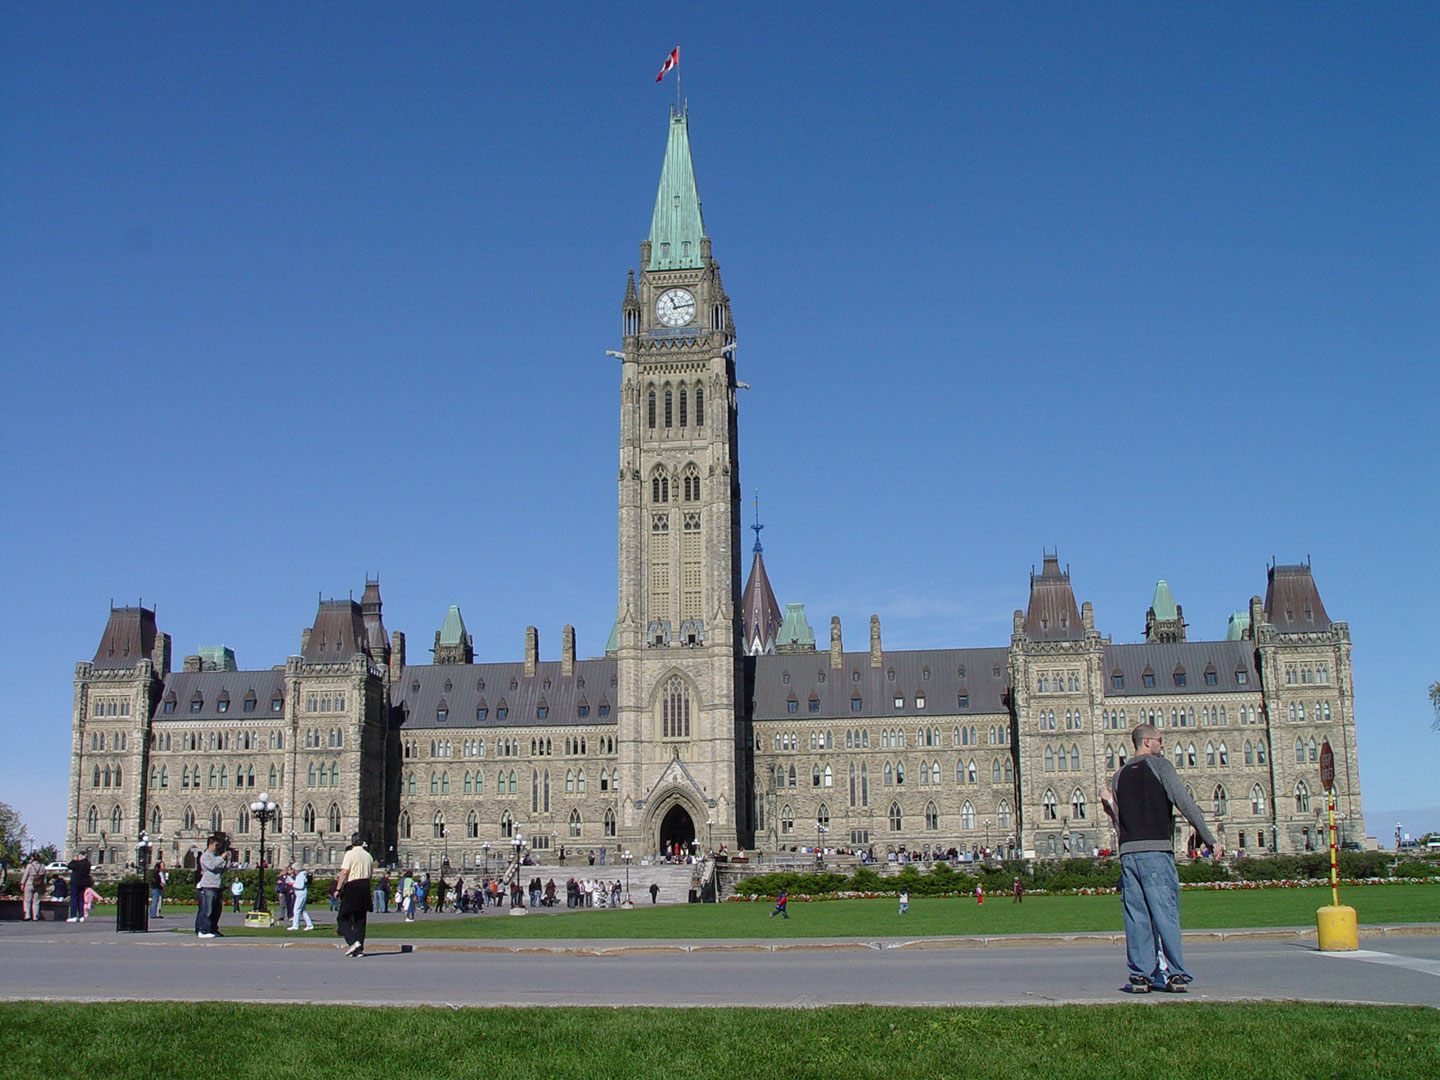 The Parliment buildings on a clear day